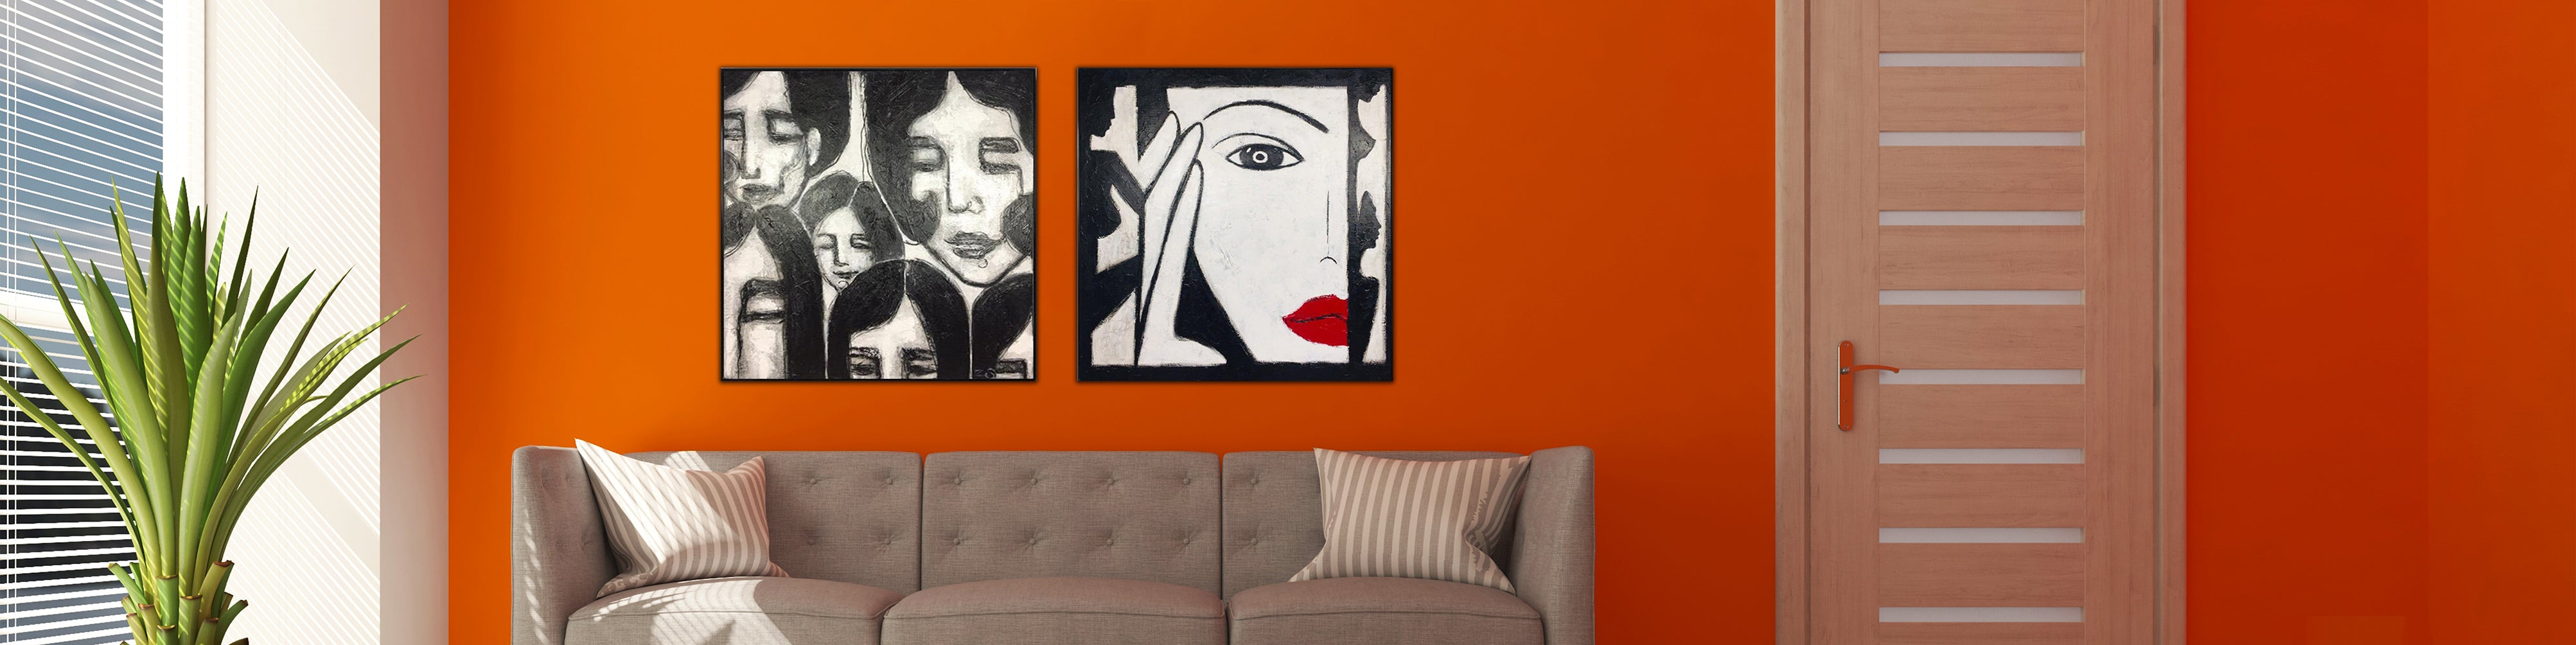 Hands-on advices on how to decorate a bedroom with abstract acrylic art